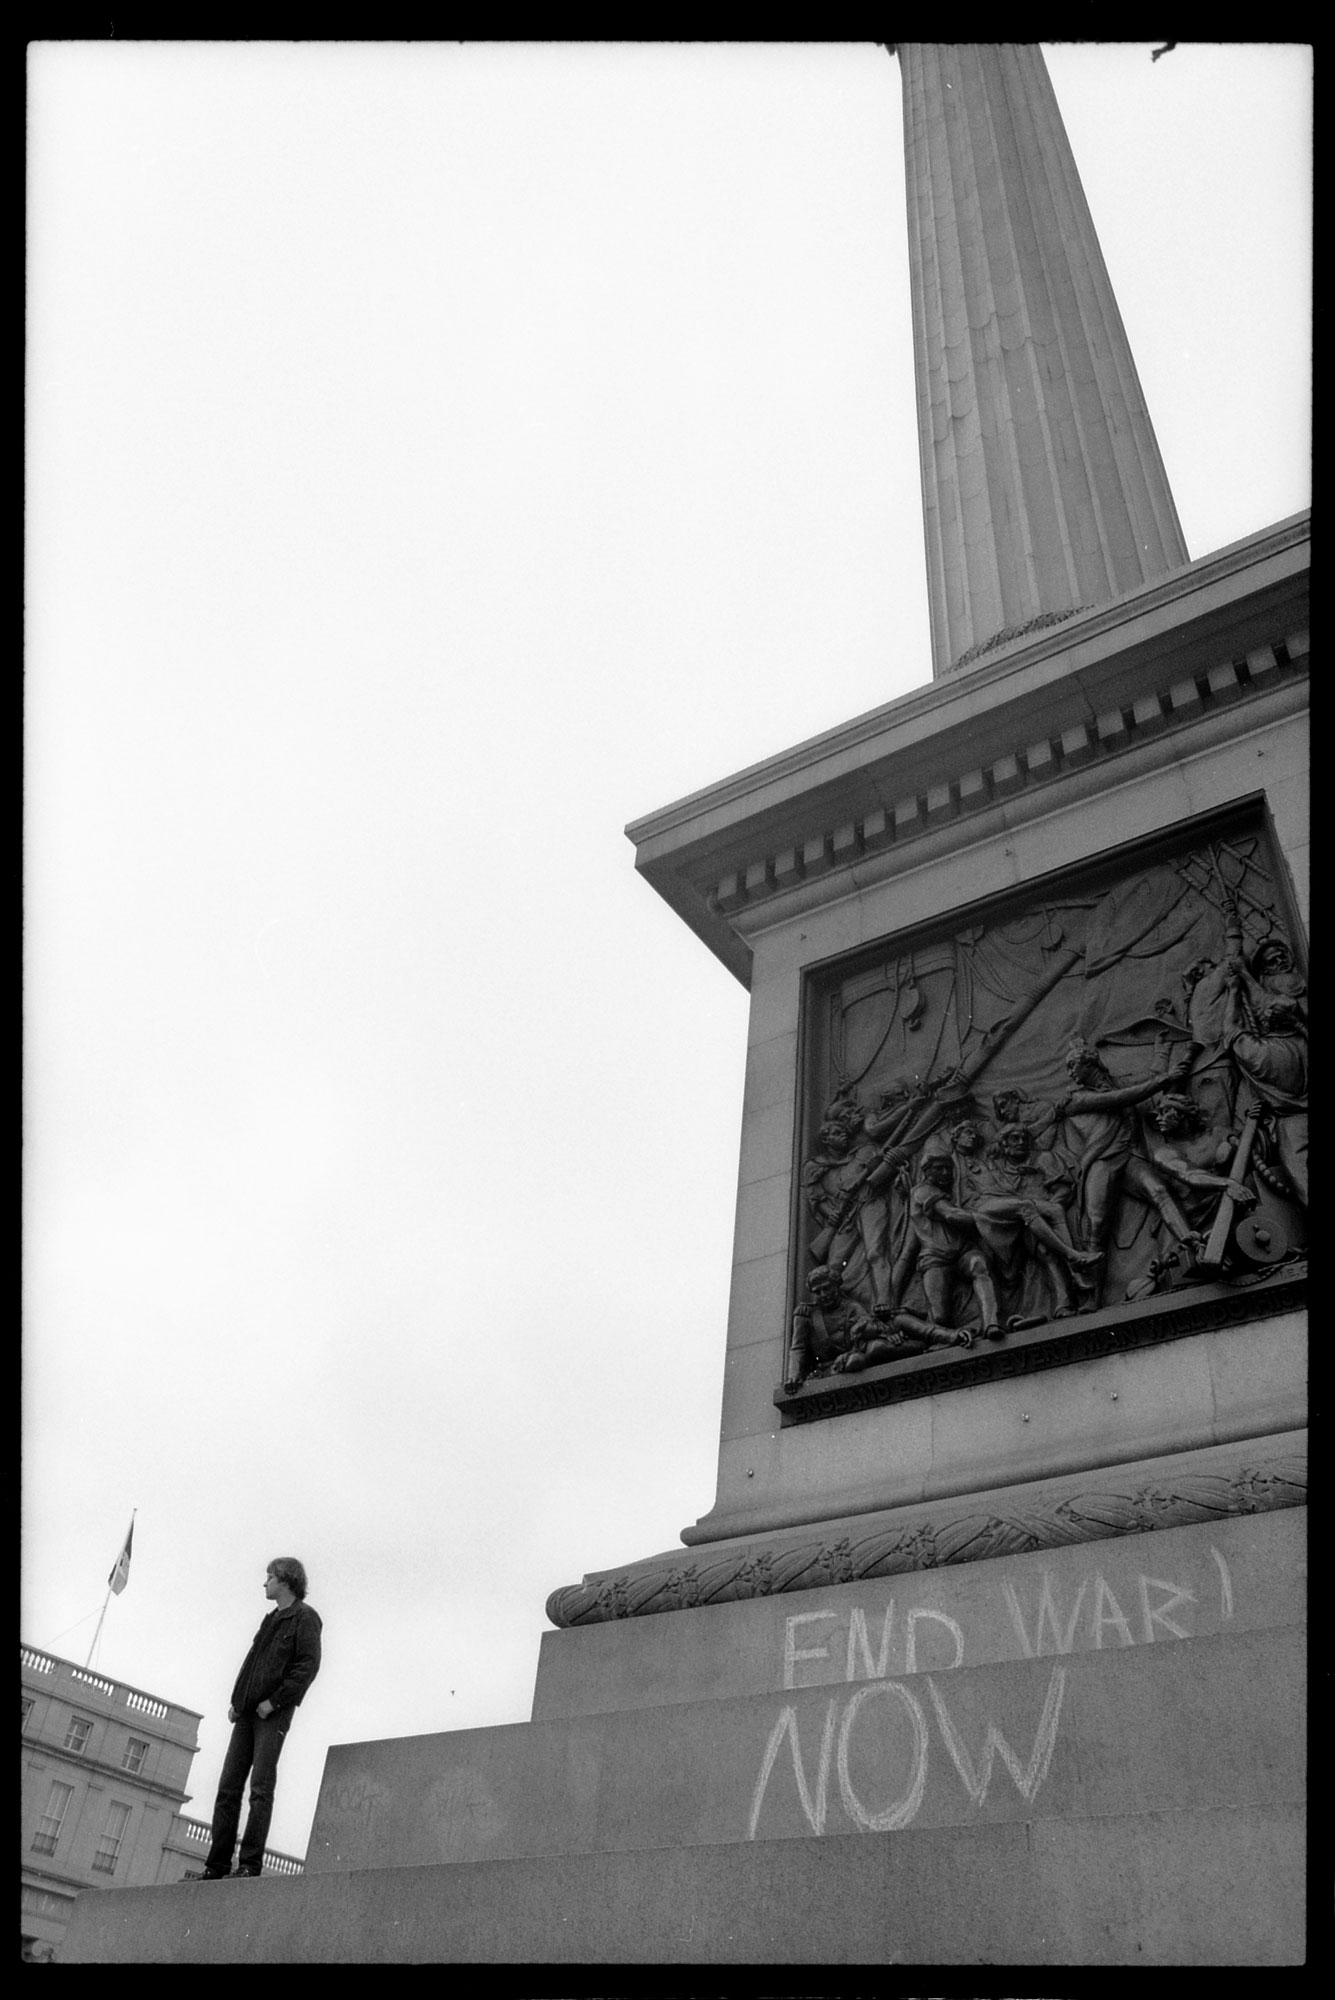 WEB_STW_end-war-now_nelsons-column_anti-war-demo-2003_dannyburrows